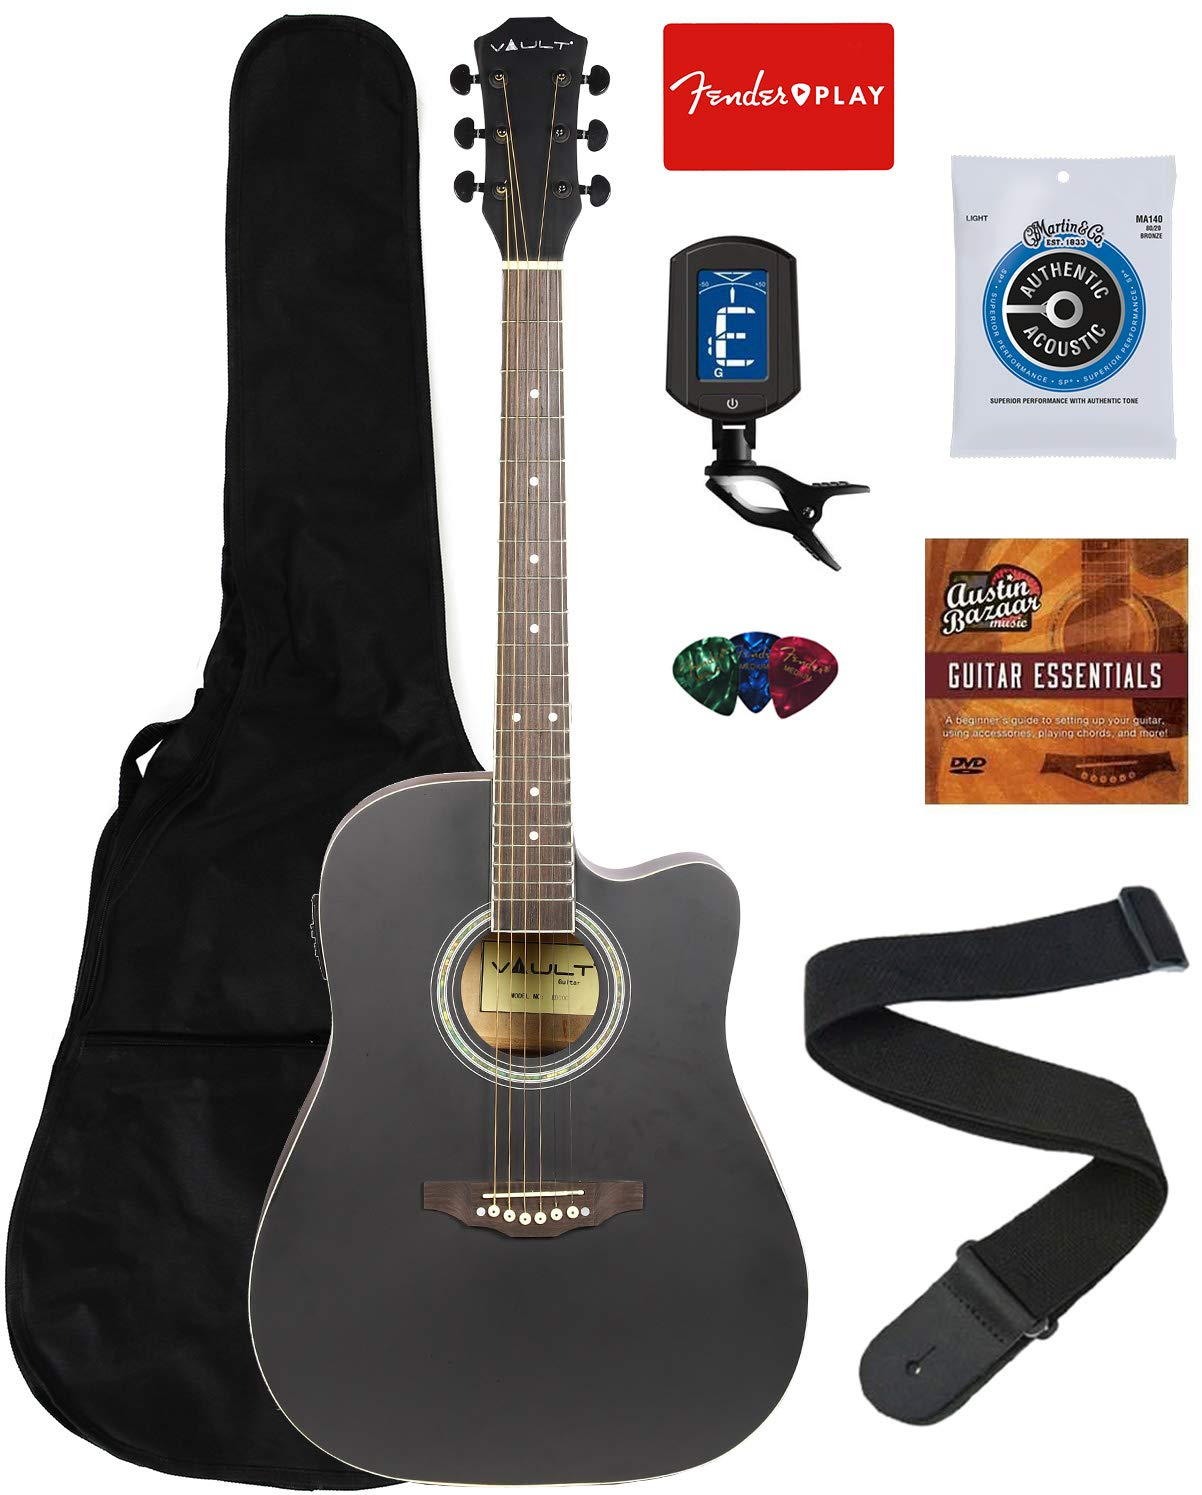 Vault EA10CEQ 41-Inch Dreadnought Cutaway Acoustic-Electric Guitar - Black Bundle with Gig Bag, Tuner, String, Picks, Strap, Fender Play Online Lessons, and Austin Bazaar Instructional DVD